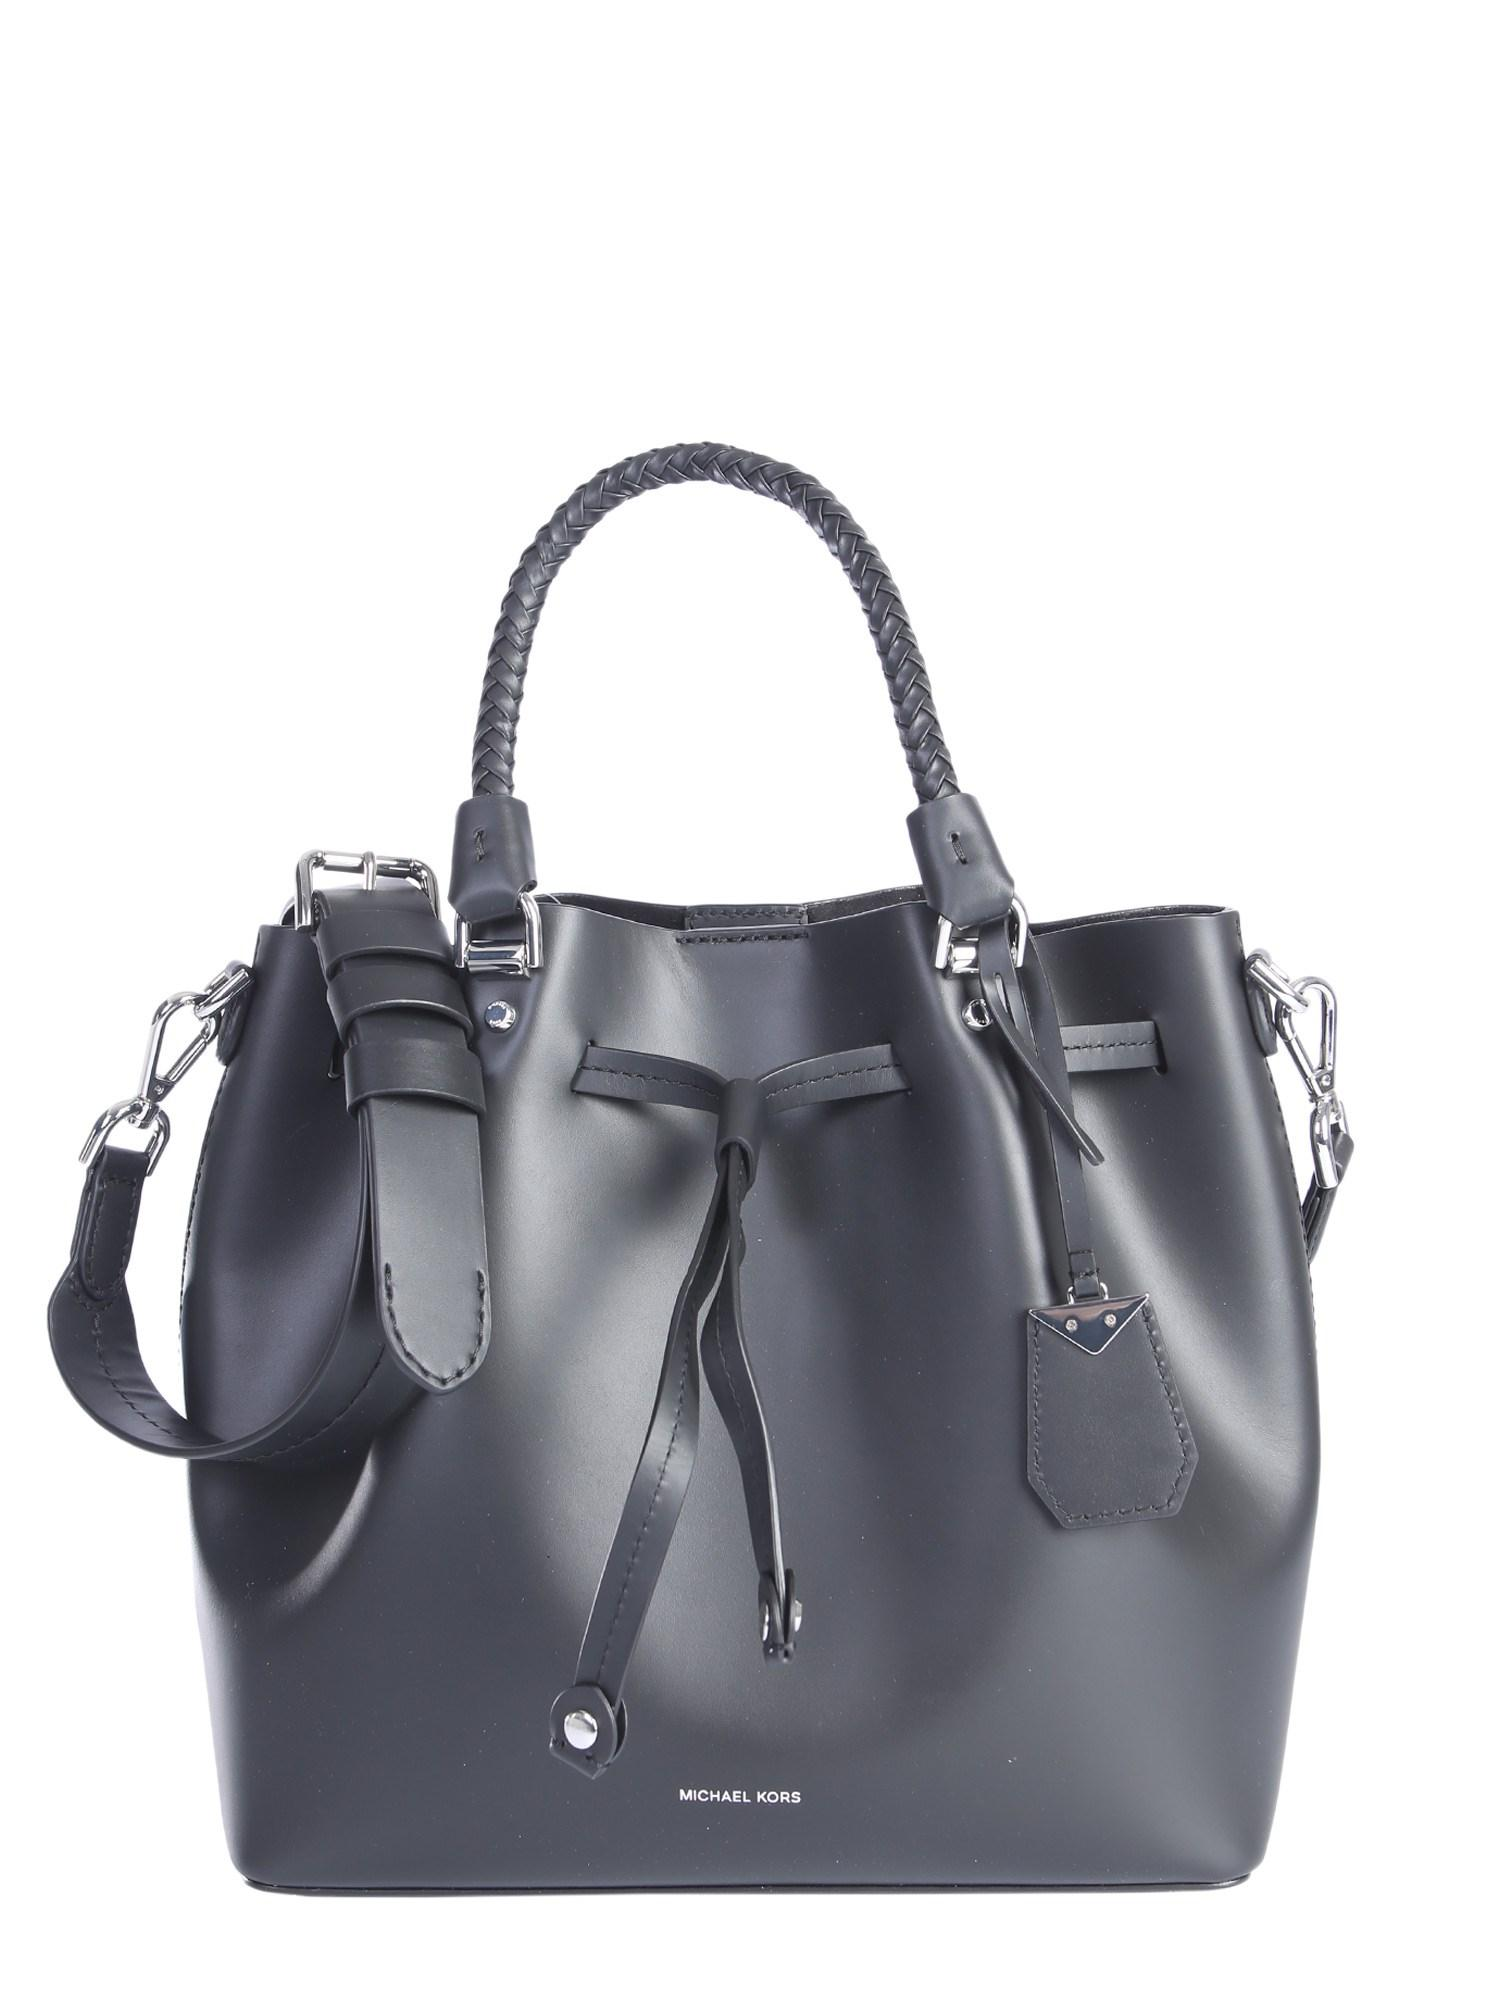 7ef4958513e4 MICHAEL Michael Kors Blakely Leather Bucket Bag in Black - Lyst